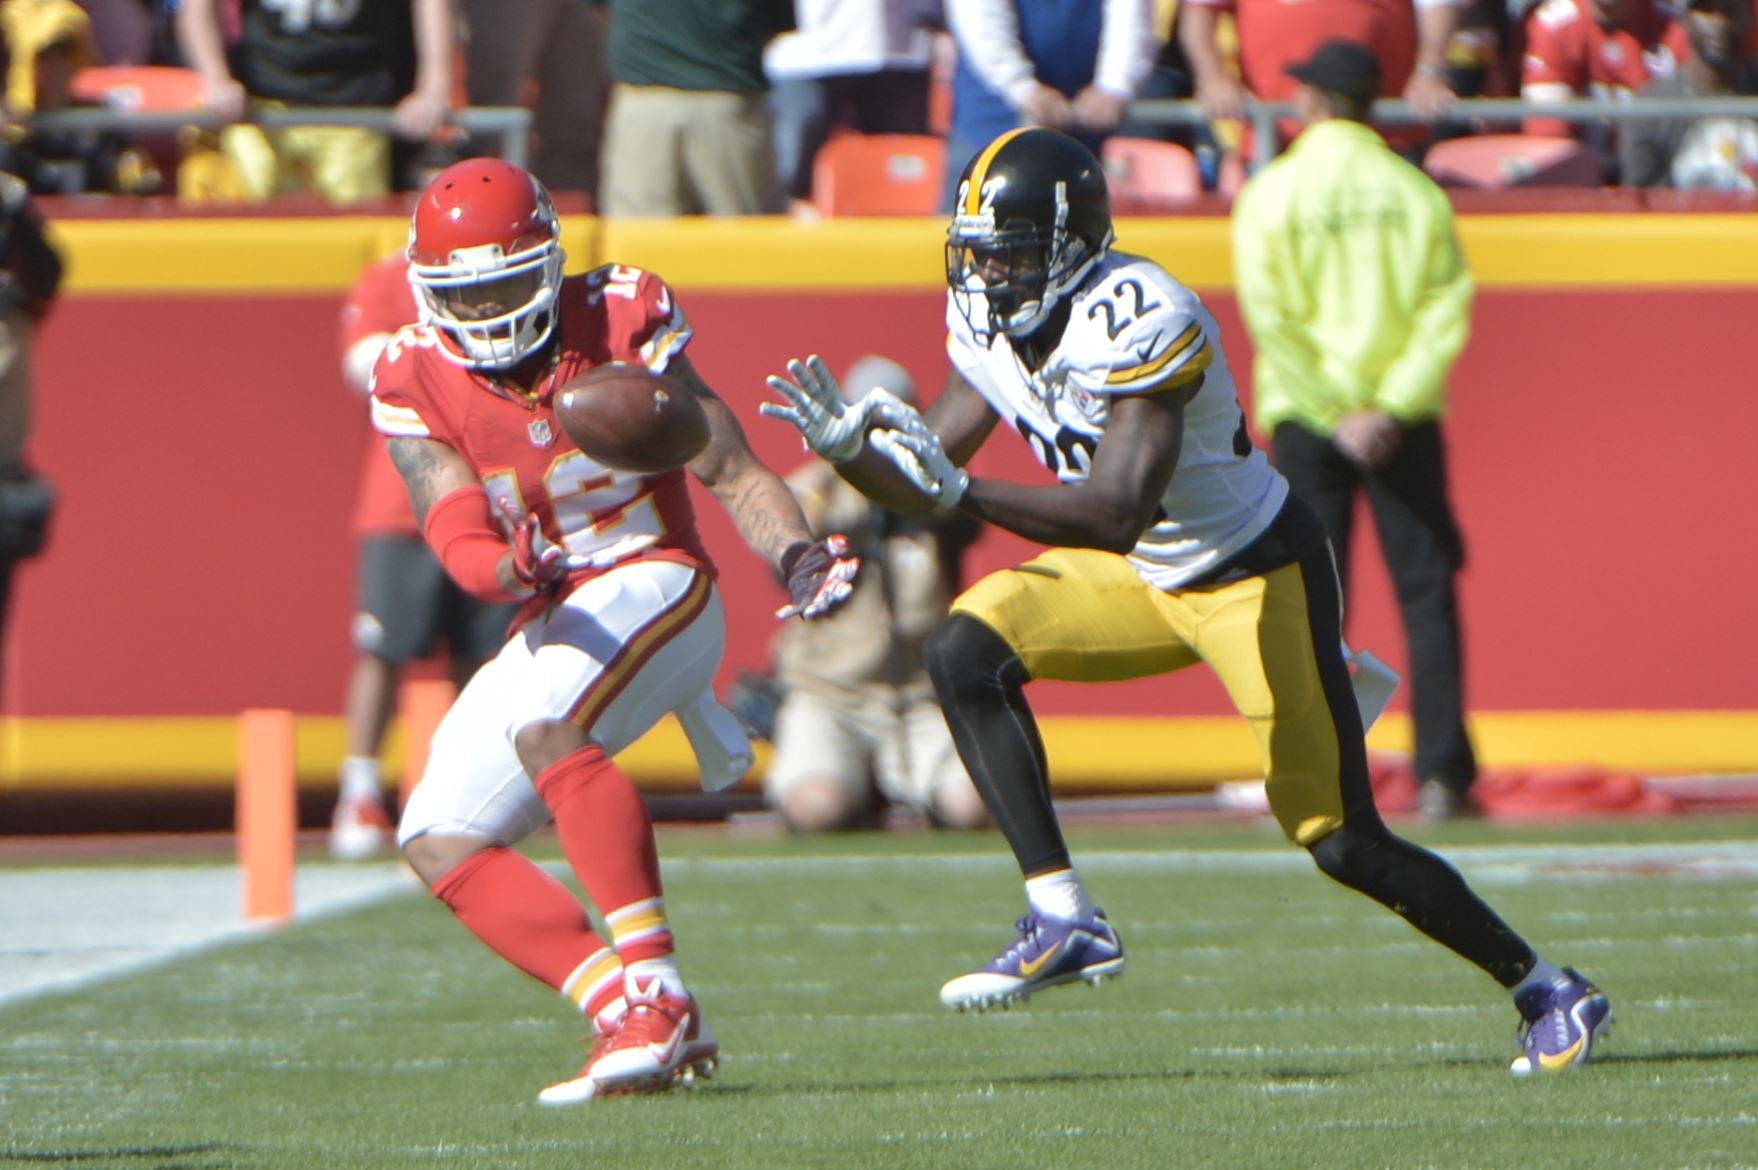 william gay Get the latest fantasy news, stats, and injury updates for ny giants giants db william gay from cbs sports.